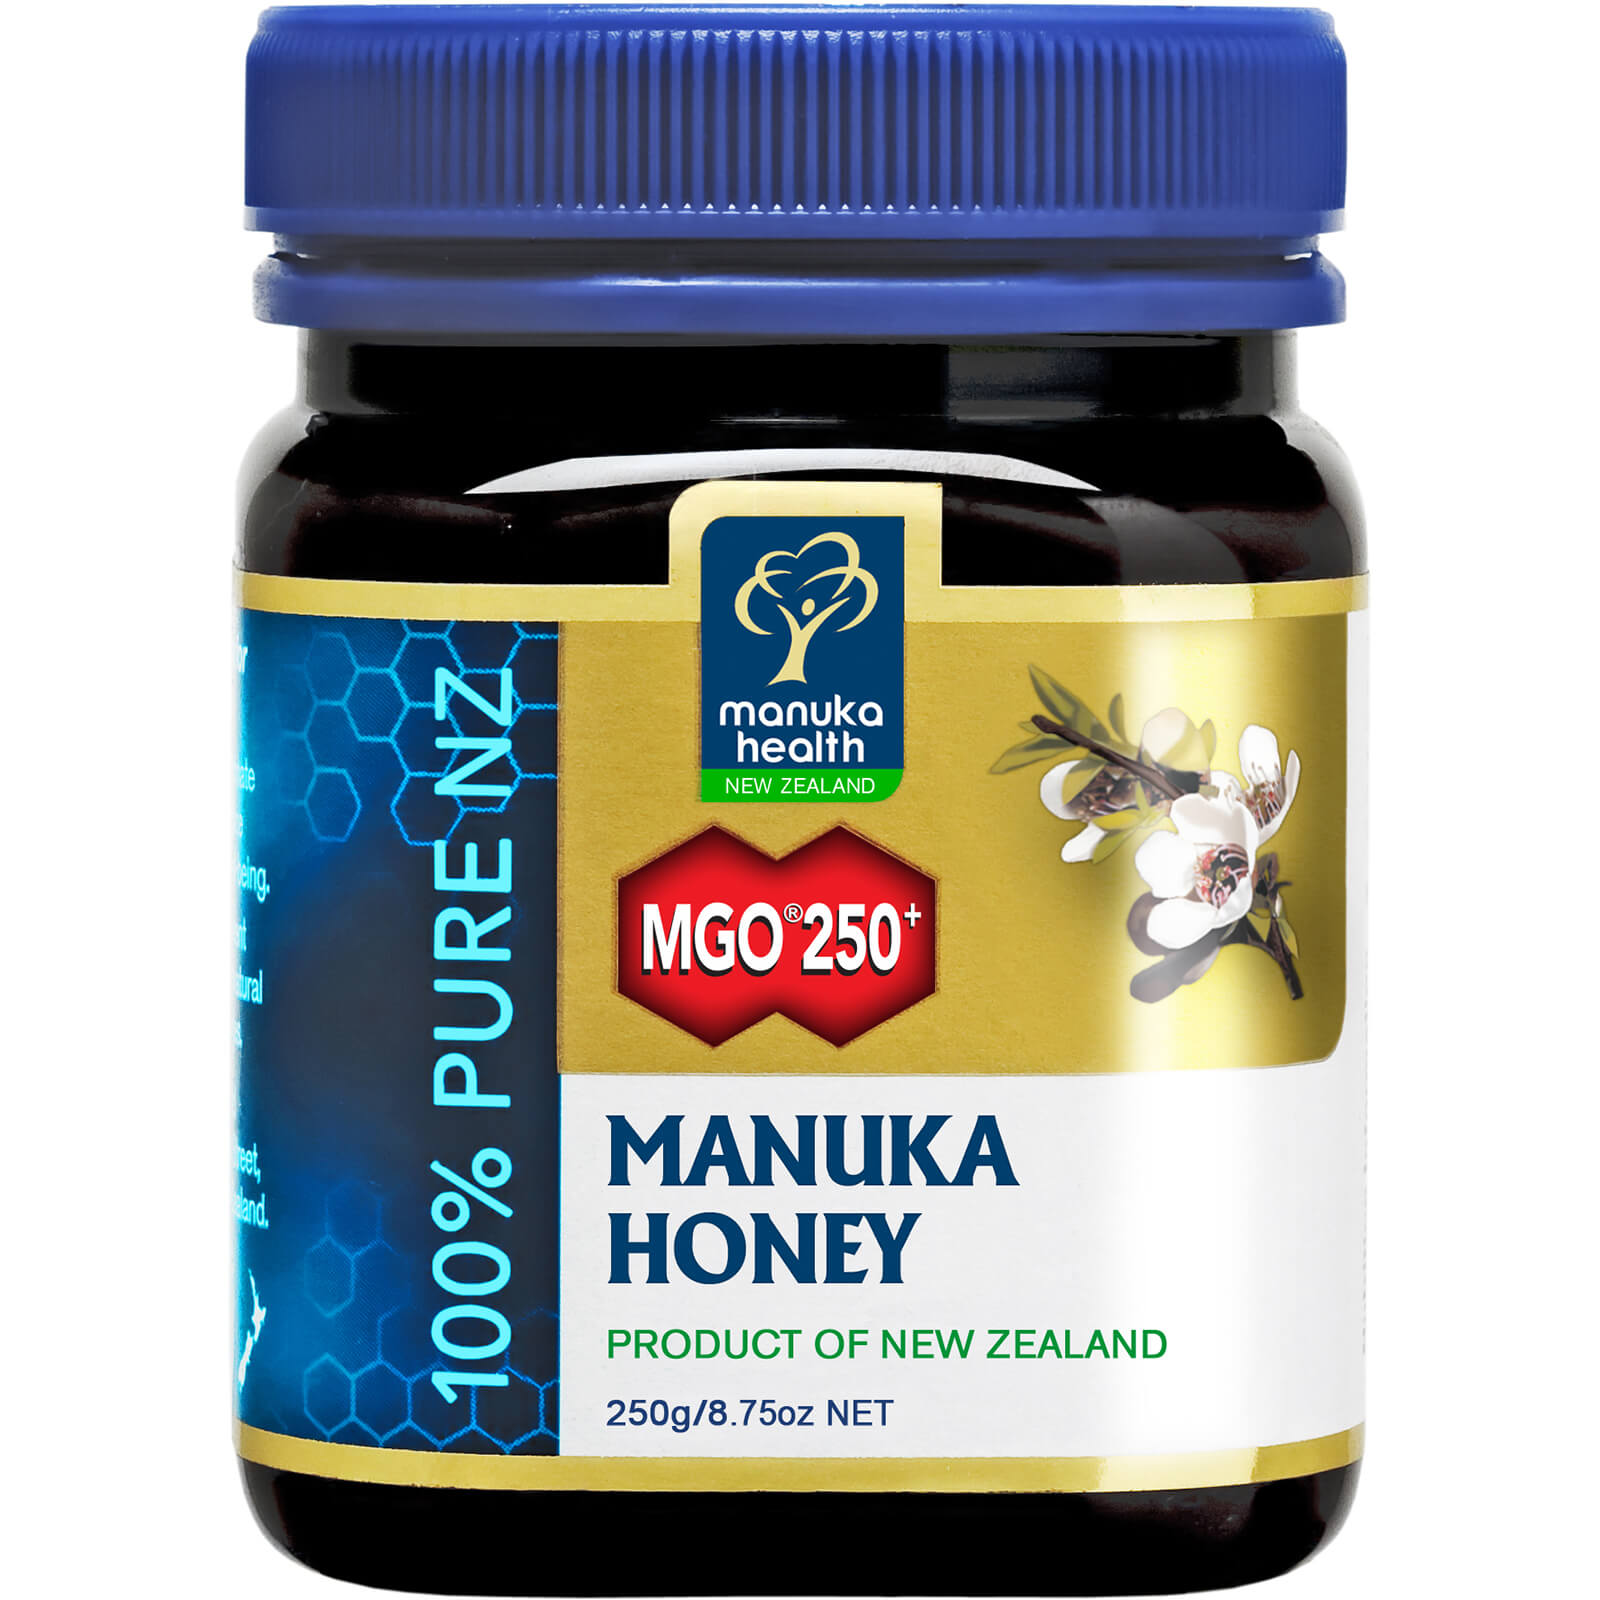 Manuka Health MGO 250+ Pure Manuka Honey Blend 250g